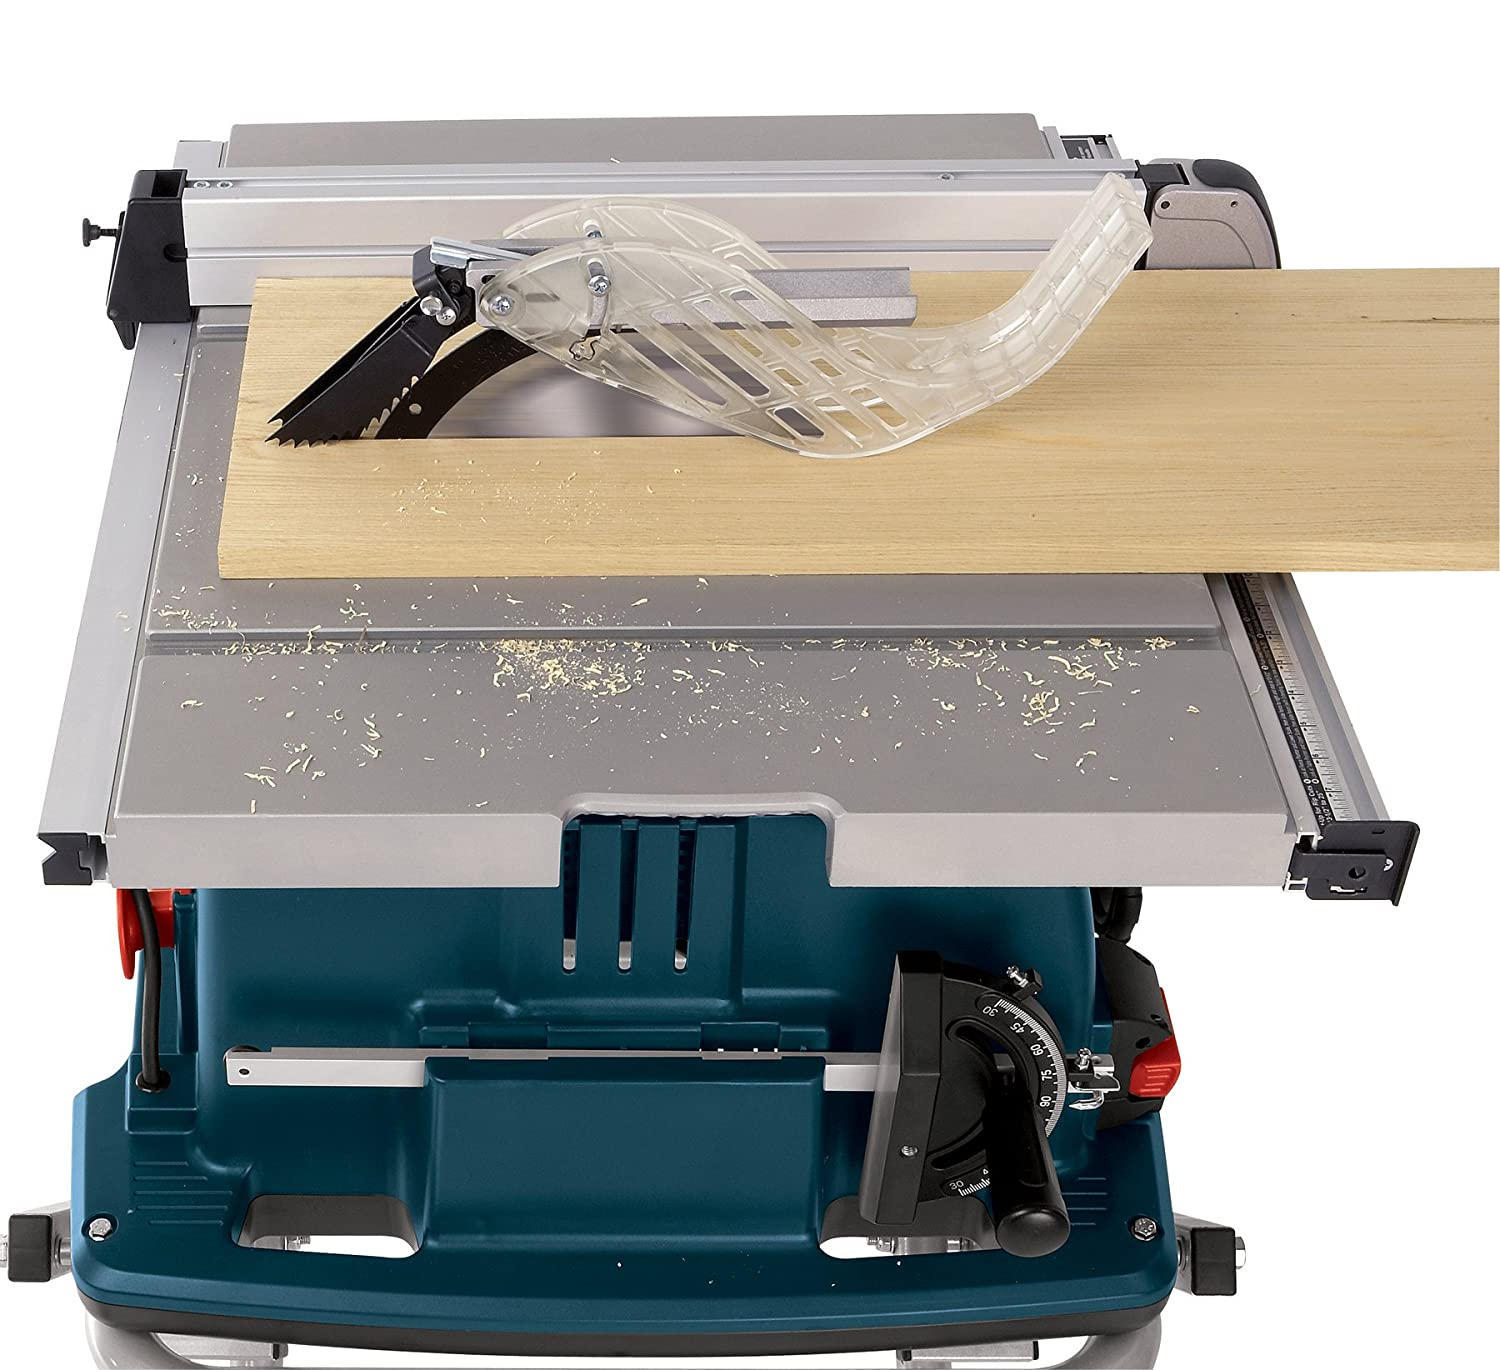 Bosch 4100 09 10 inch portable table saw review for 10 inch table saw blade reviews